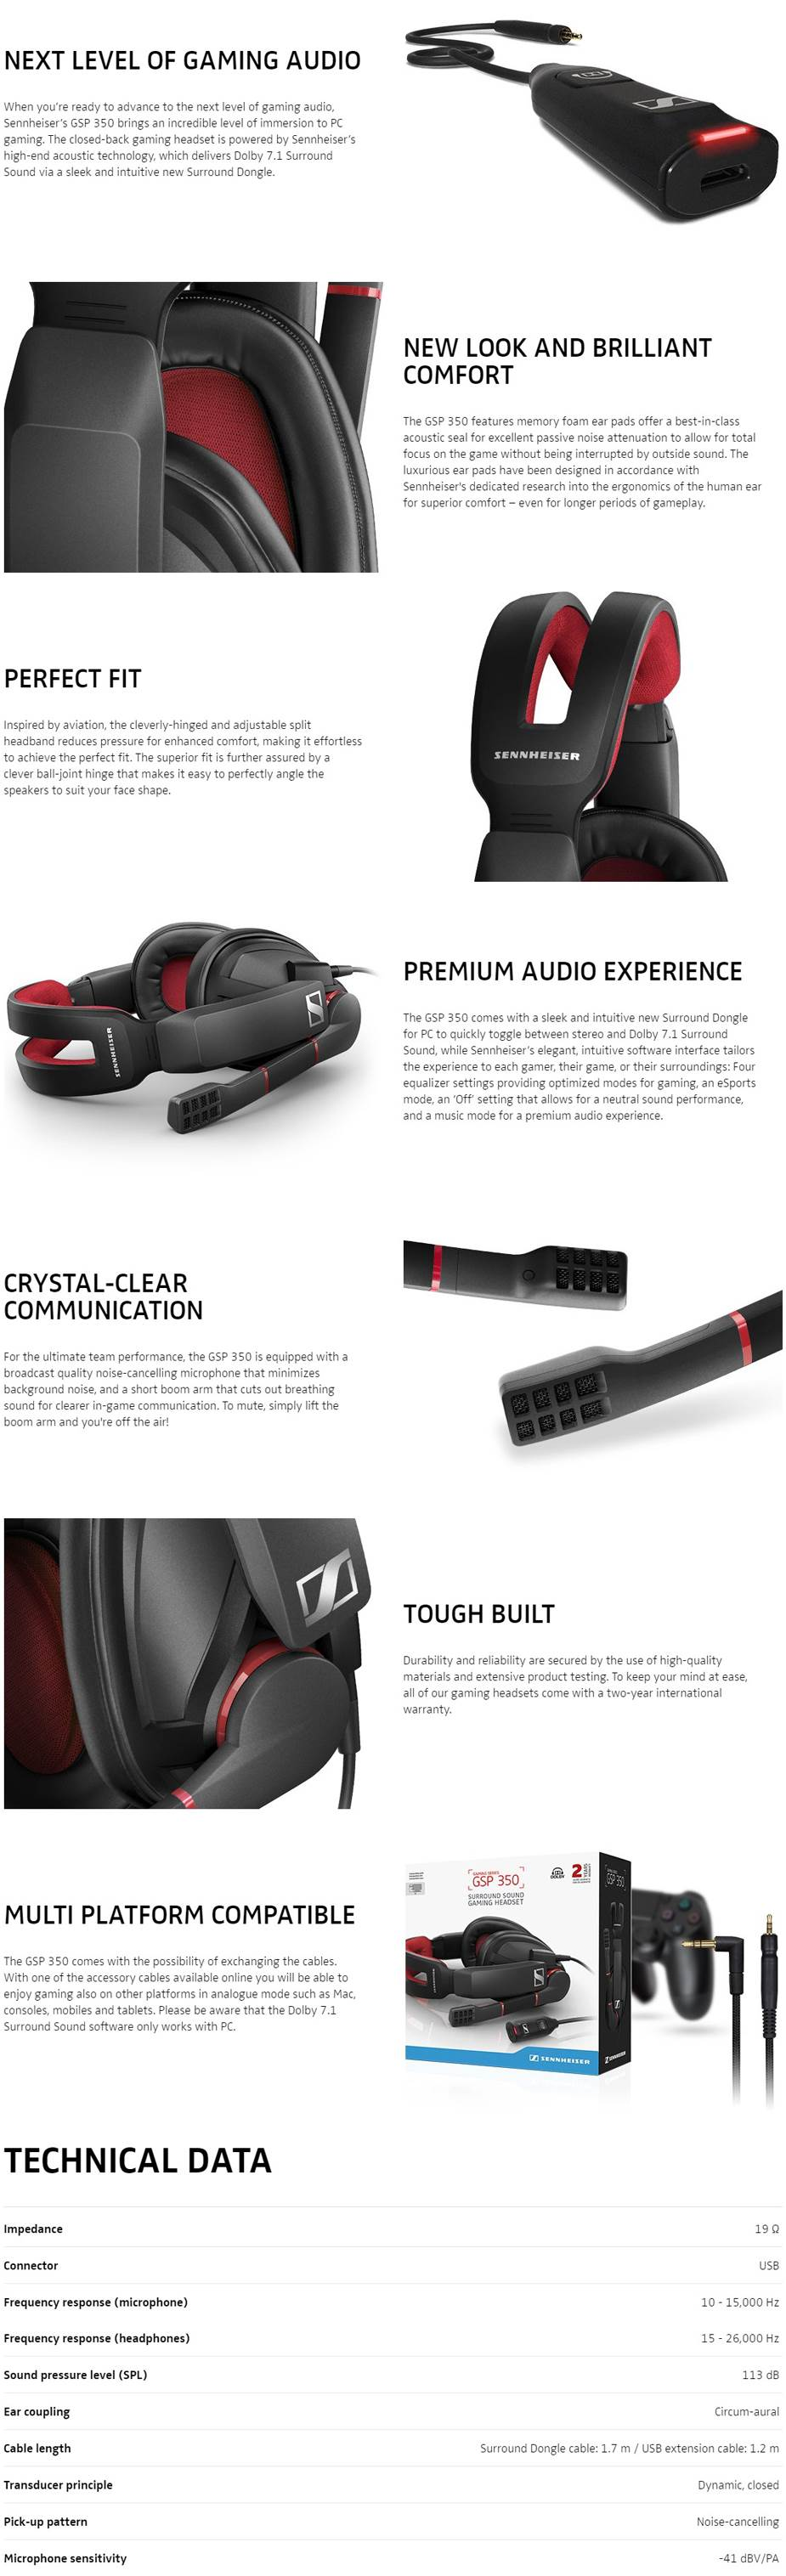 A large marketing image providing additional information about the product EPOS | Sennheiser Gaming GSP 350 Closed-Back 7.1 Gaming Headset - Additional alt info not provided